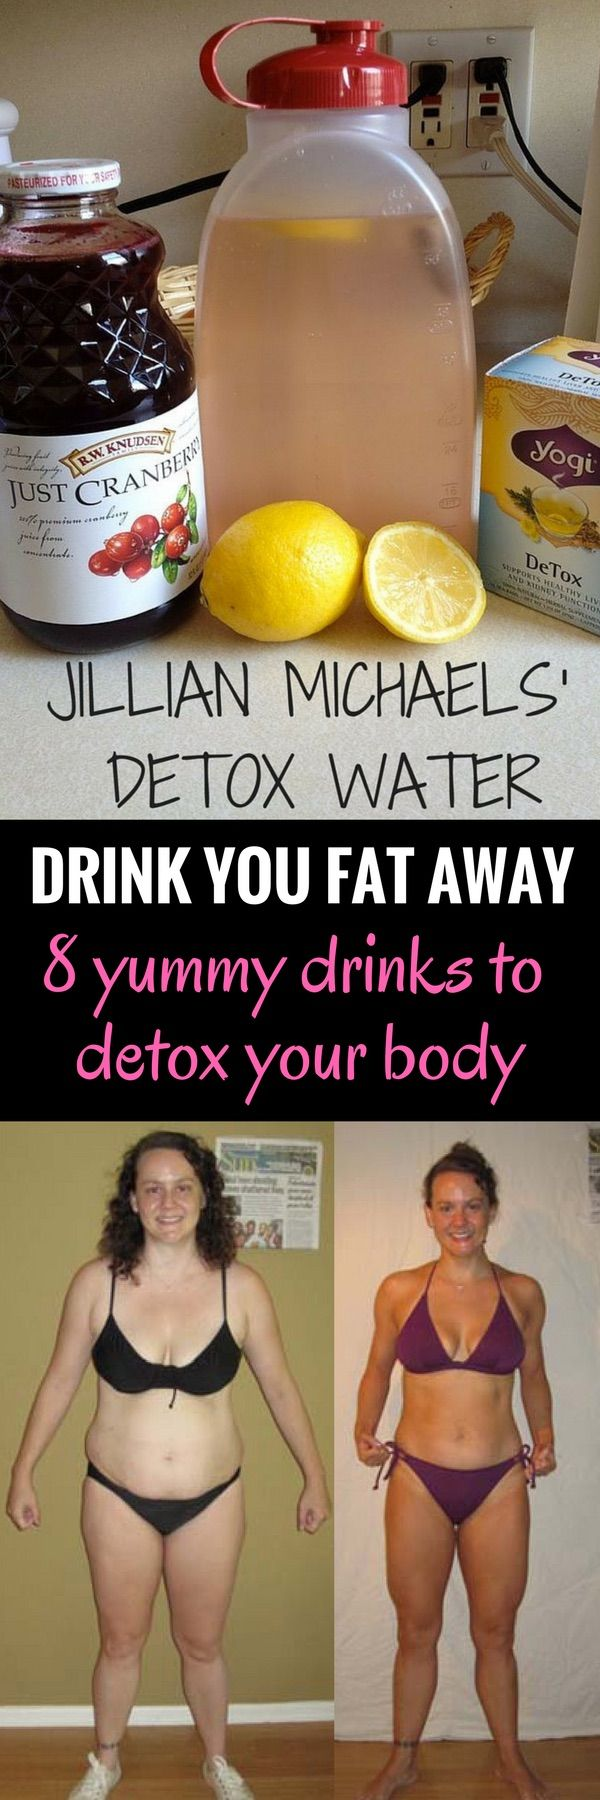 juice detox diet to lose weight